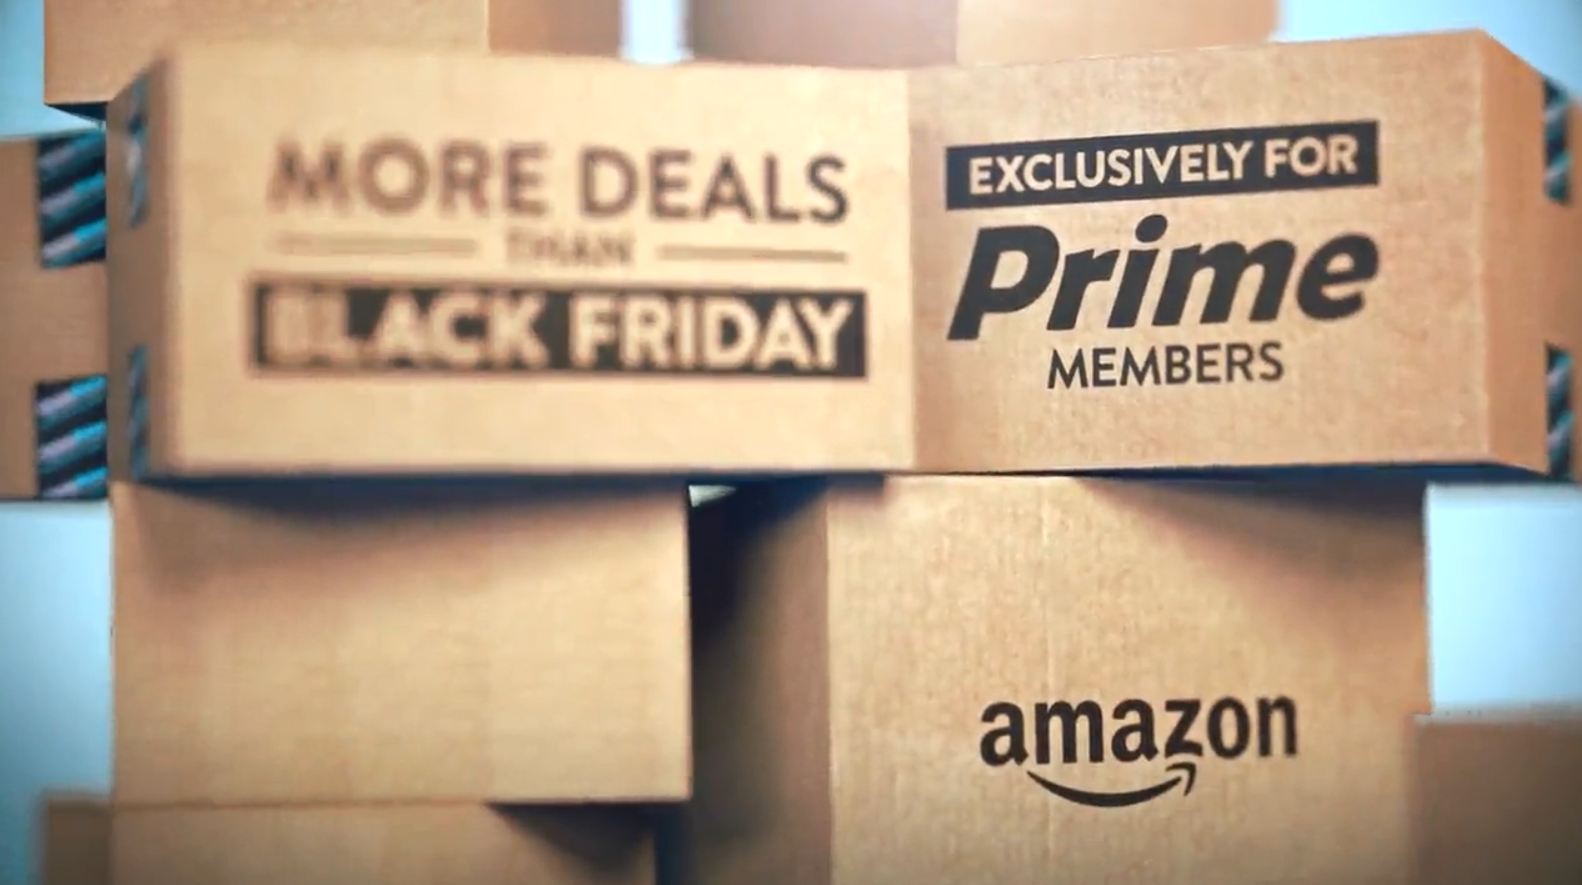 Amazon Prime Day 2019 Date Revealed: It All Starts July 15